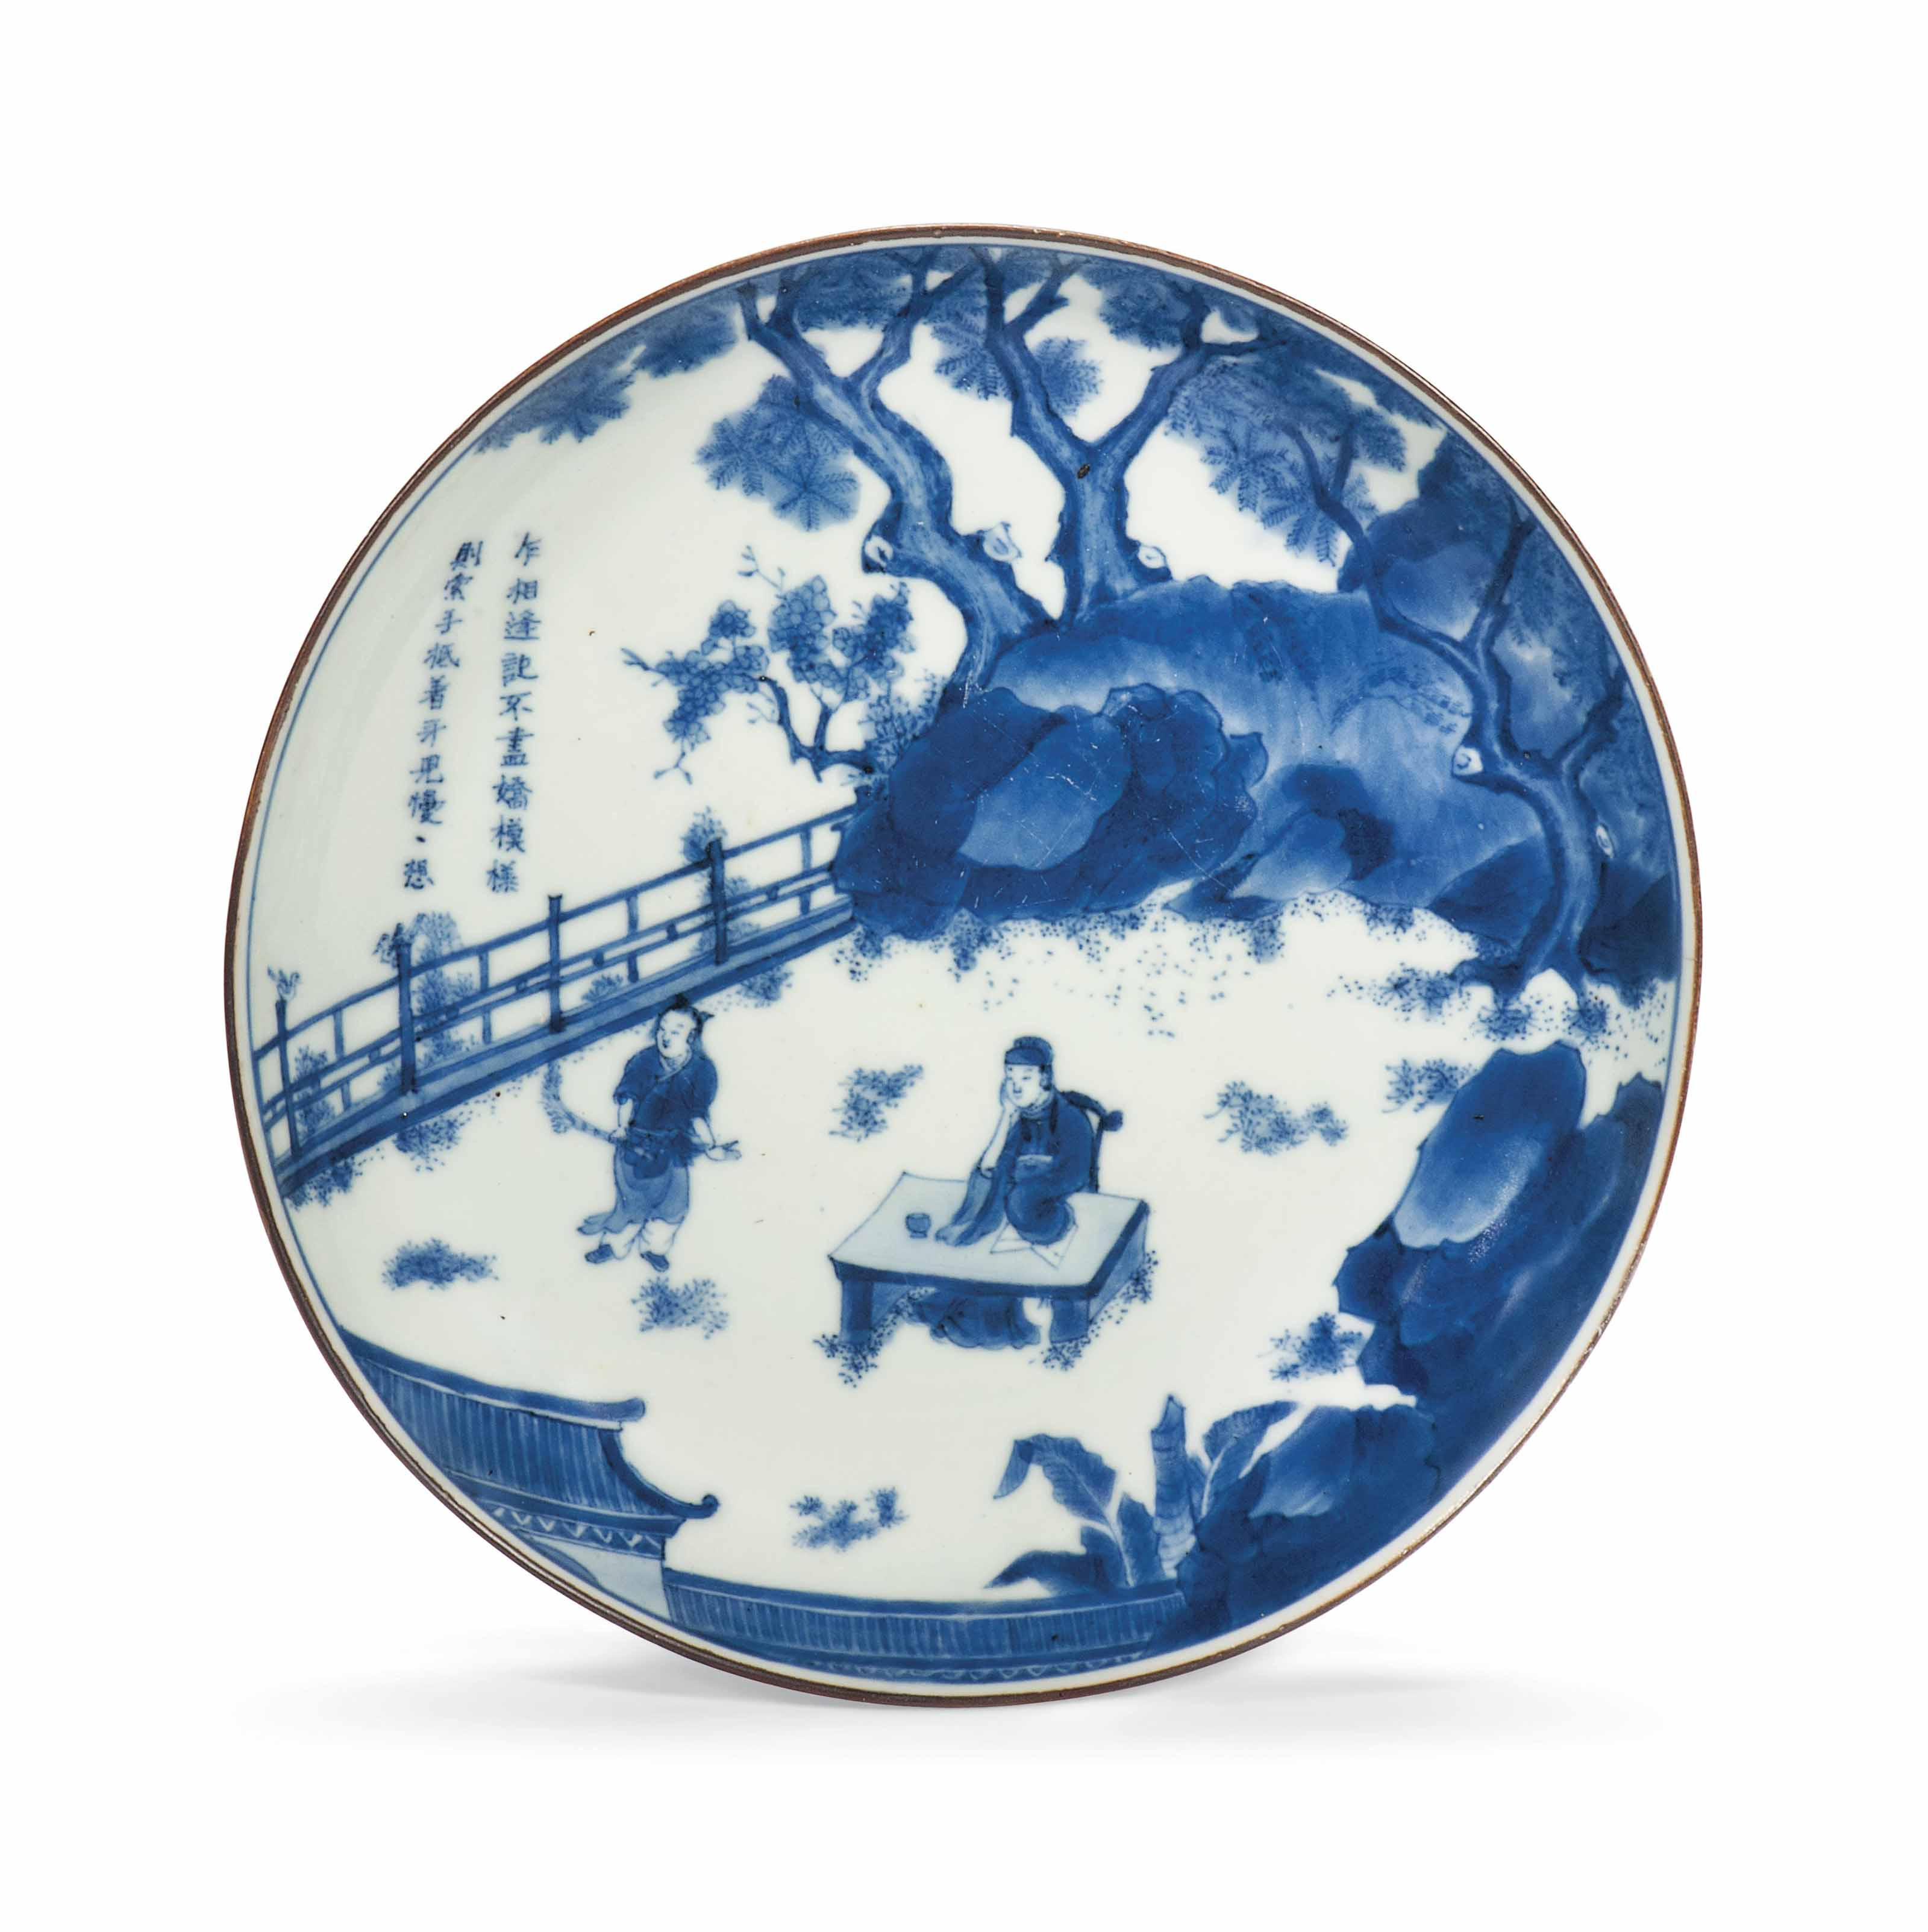 A BLUE AND WHITE FOOTED DISH